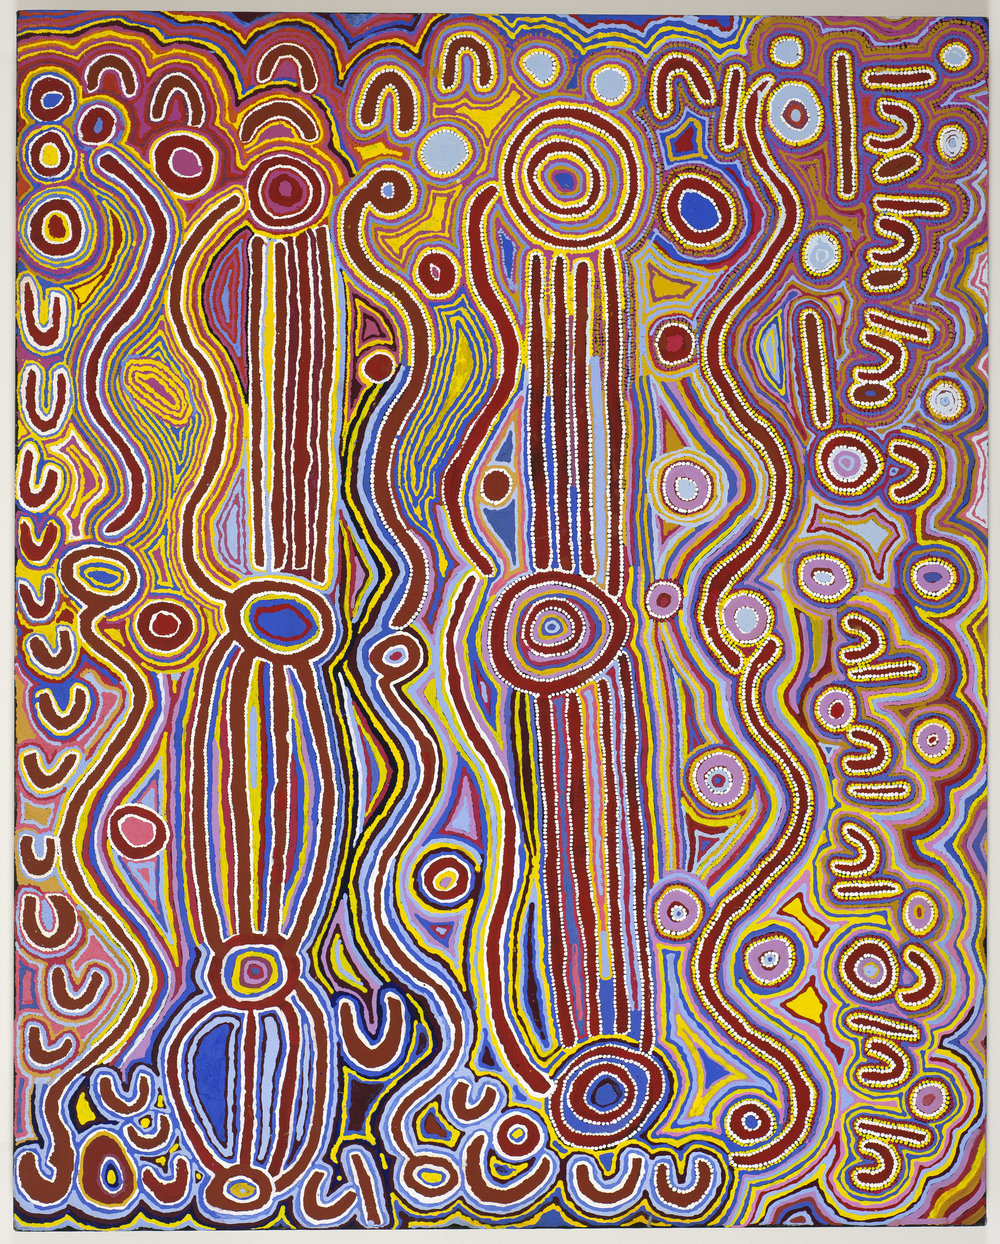 Yuendumu Women's Collaborative   Mina Mina Jukurrpa  (Mina Mina Dreaming), 1999  Synthetic polymer paint on canvas  59 1/16 x 47 1/4 in.  Promised gift of Margaret Levi and Robert Kaplan to the Seattle Art Museum  © 2018 Artists Rights Society (ARS), New York / VISCOPY, Australia, Courtesy American Federation of Arts